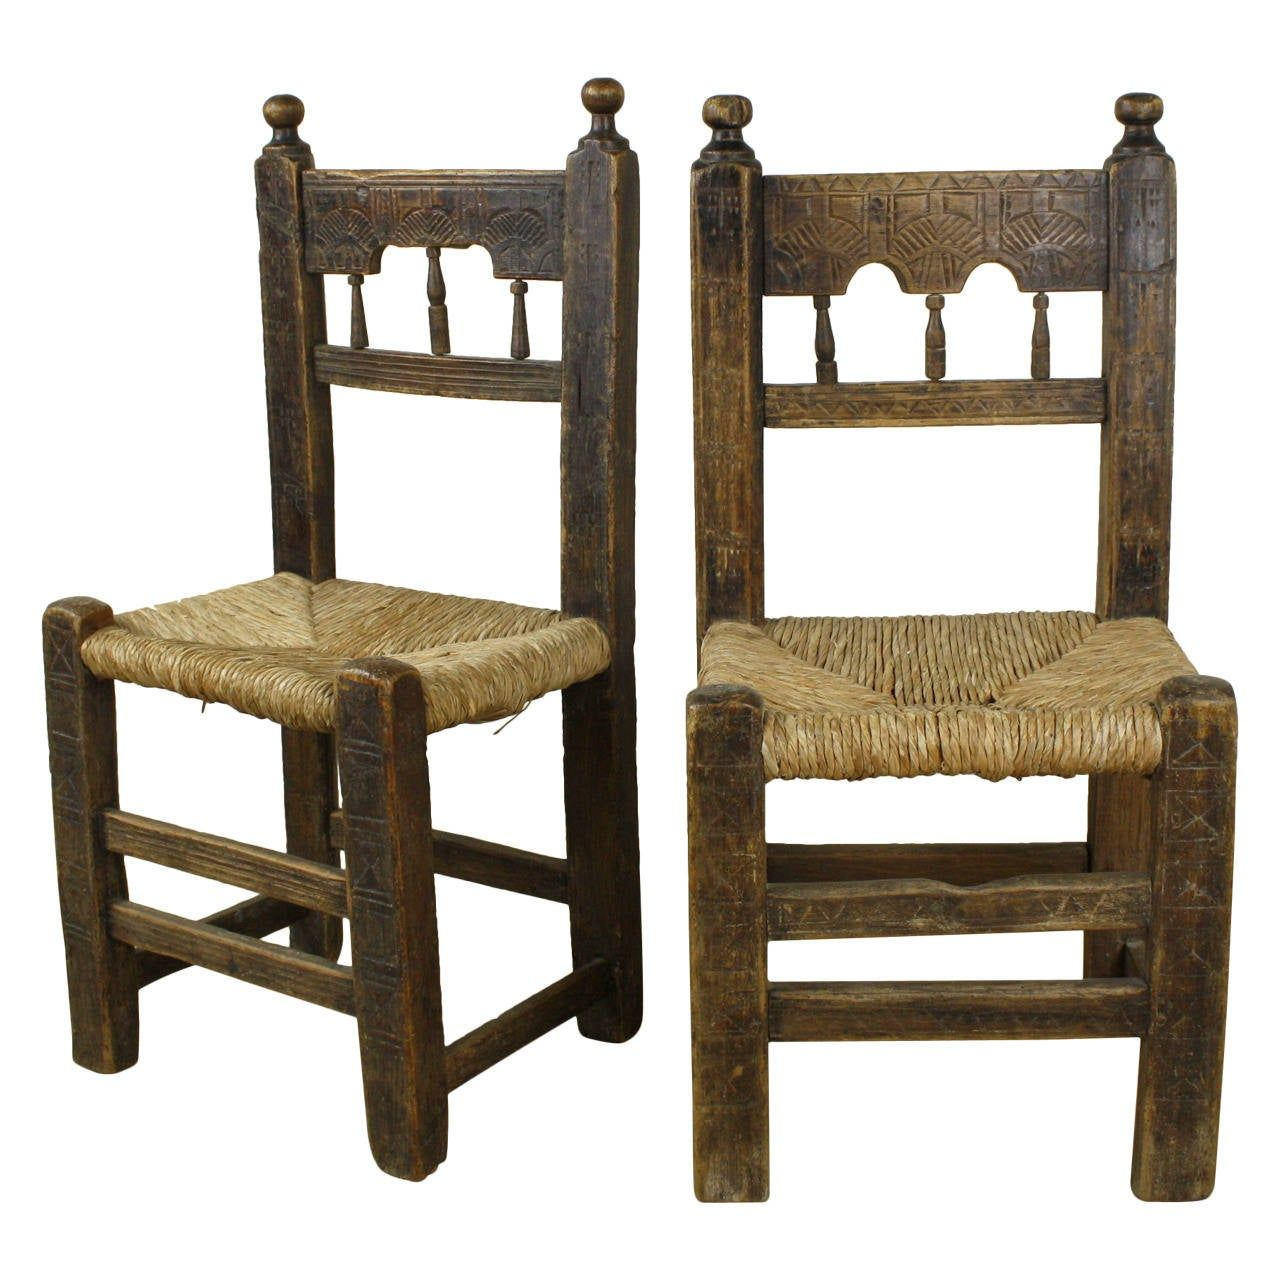 Pin On 17th Century Spanish Chairs